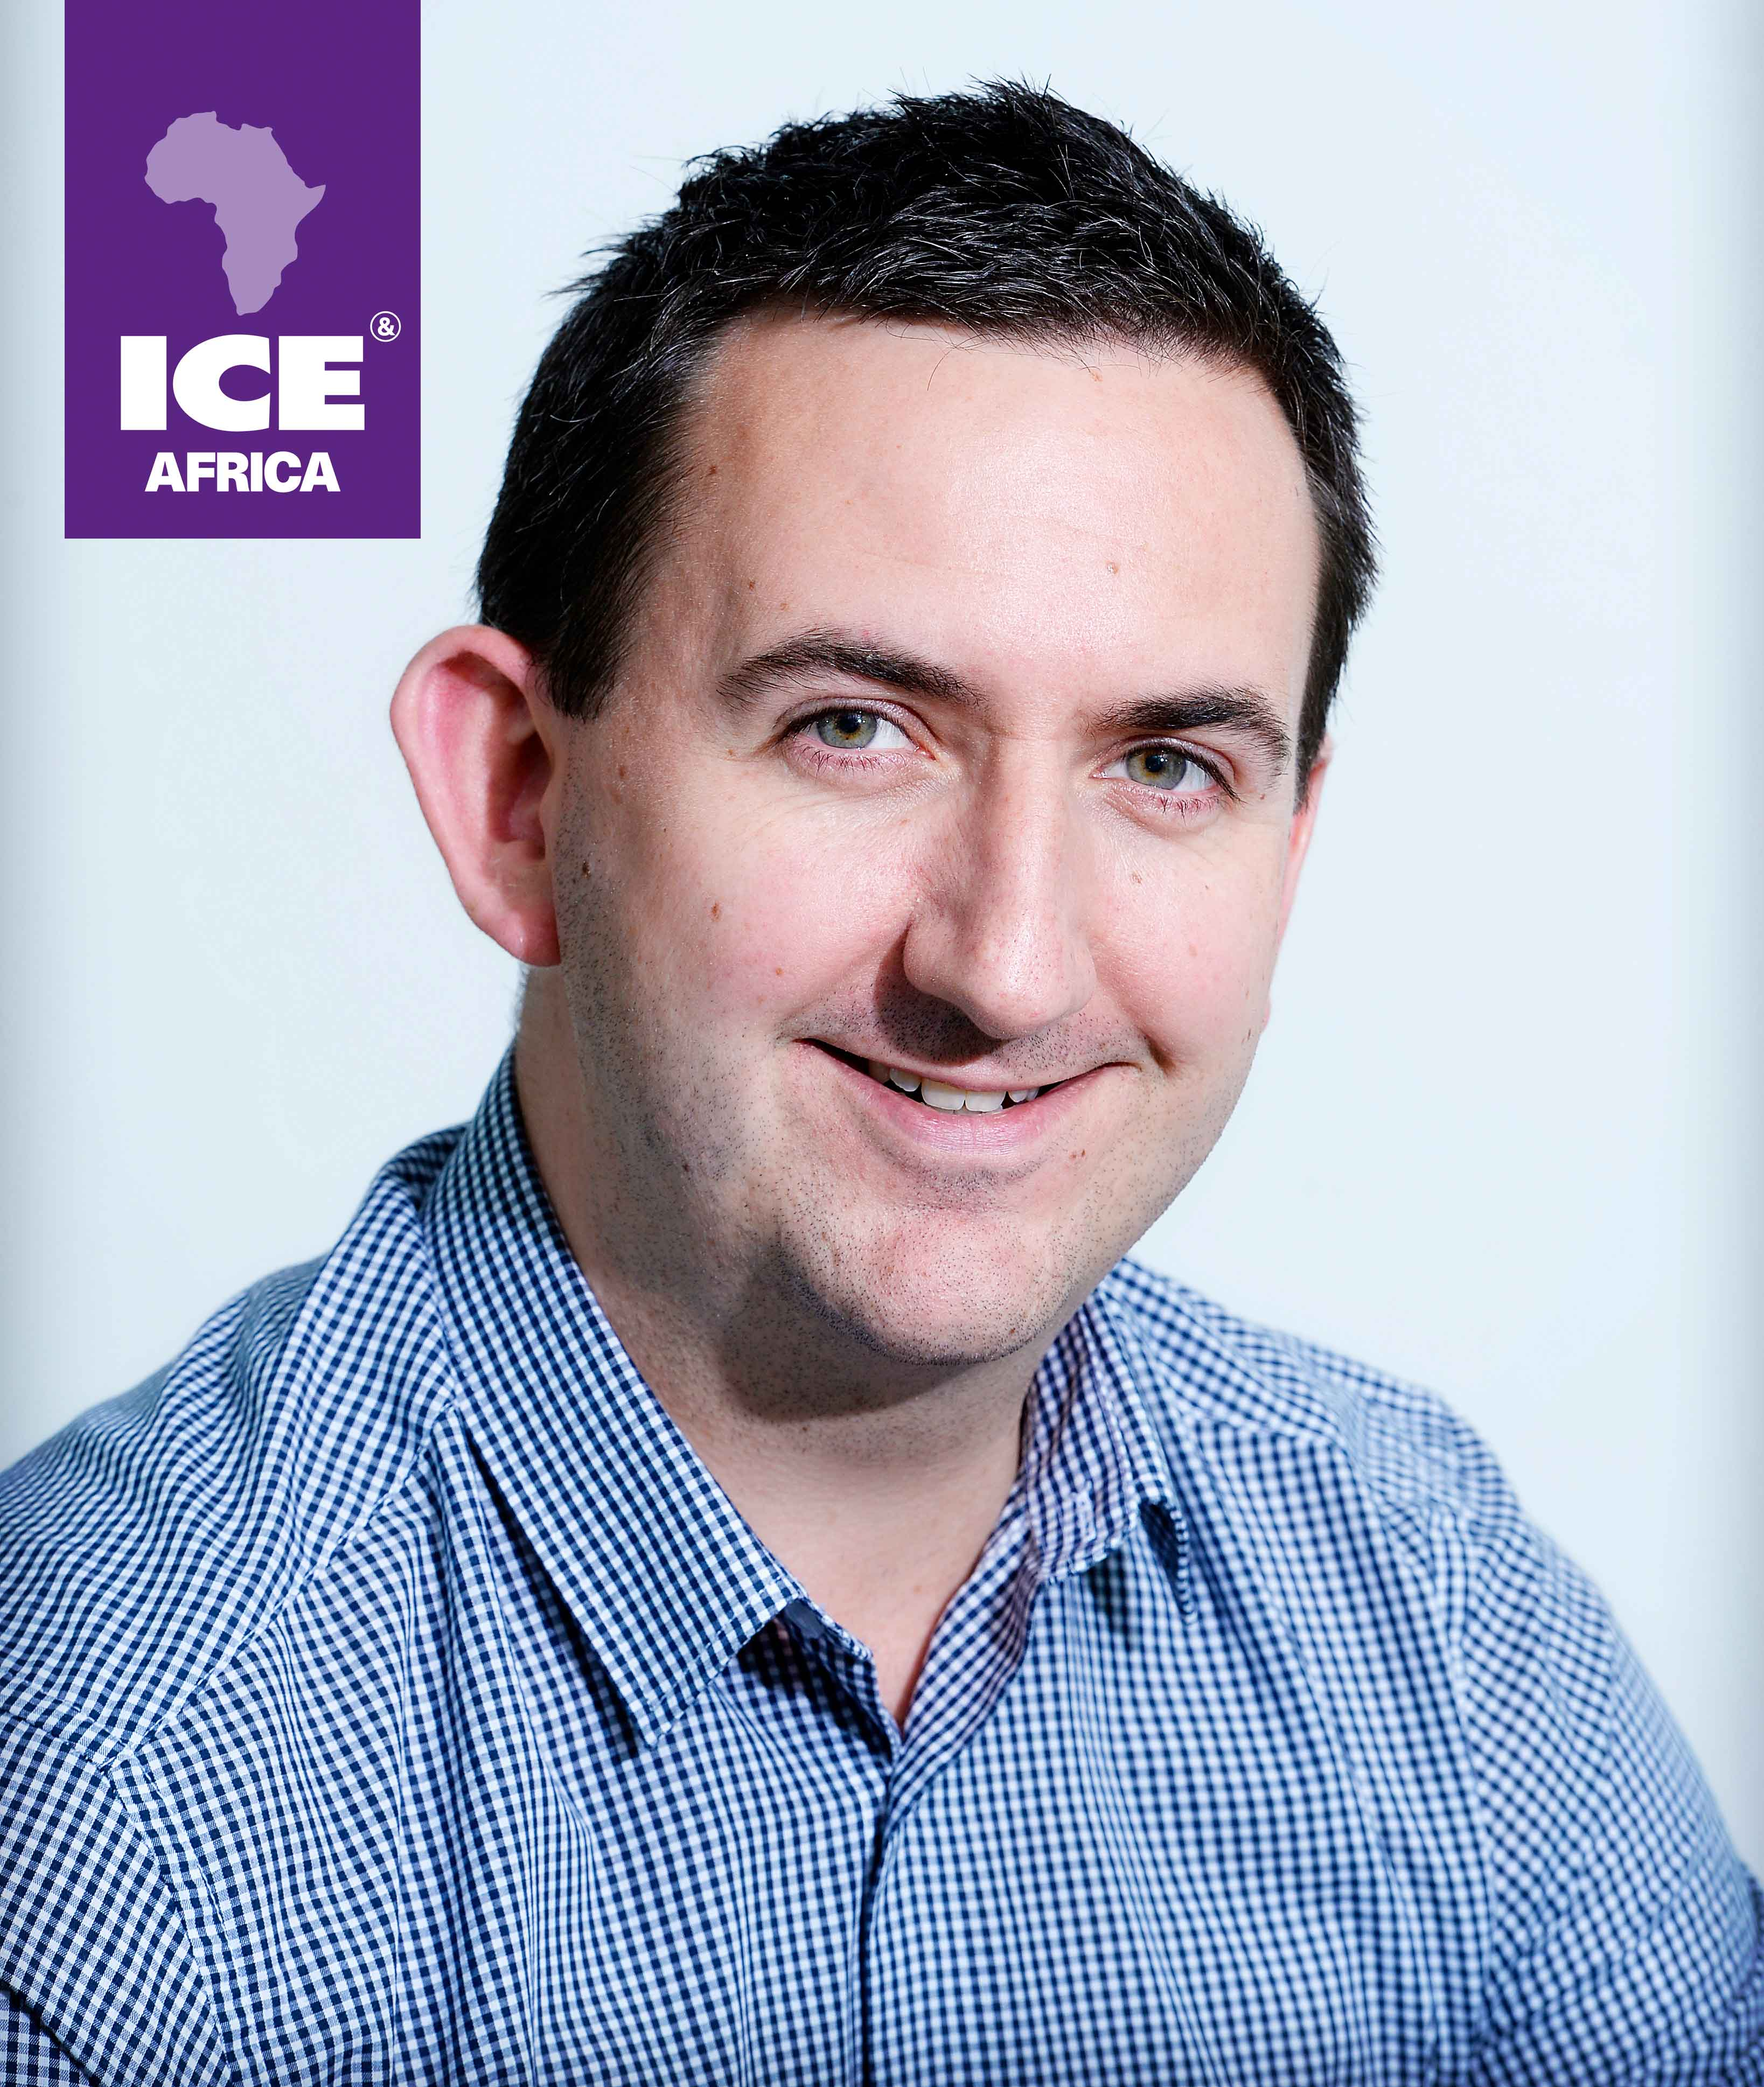 Bringing ICE to Africa: Q&A with Dan Stone of Clarion Gaming